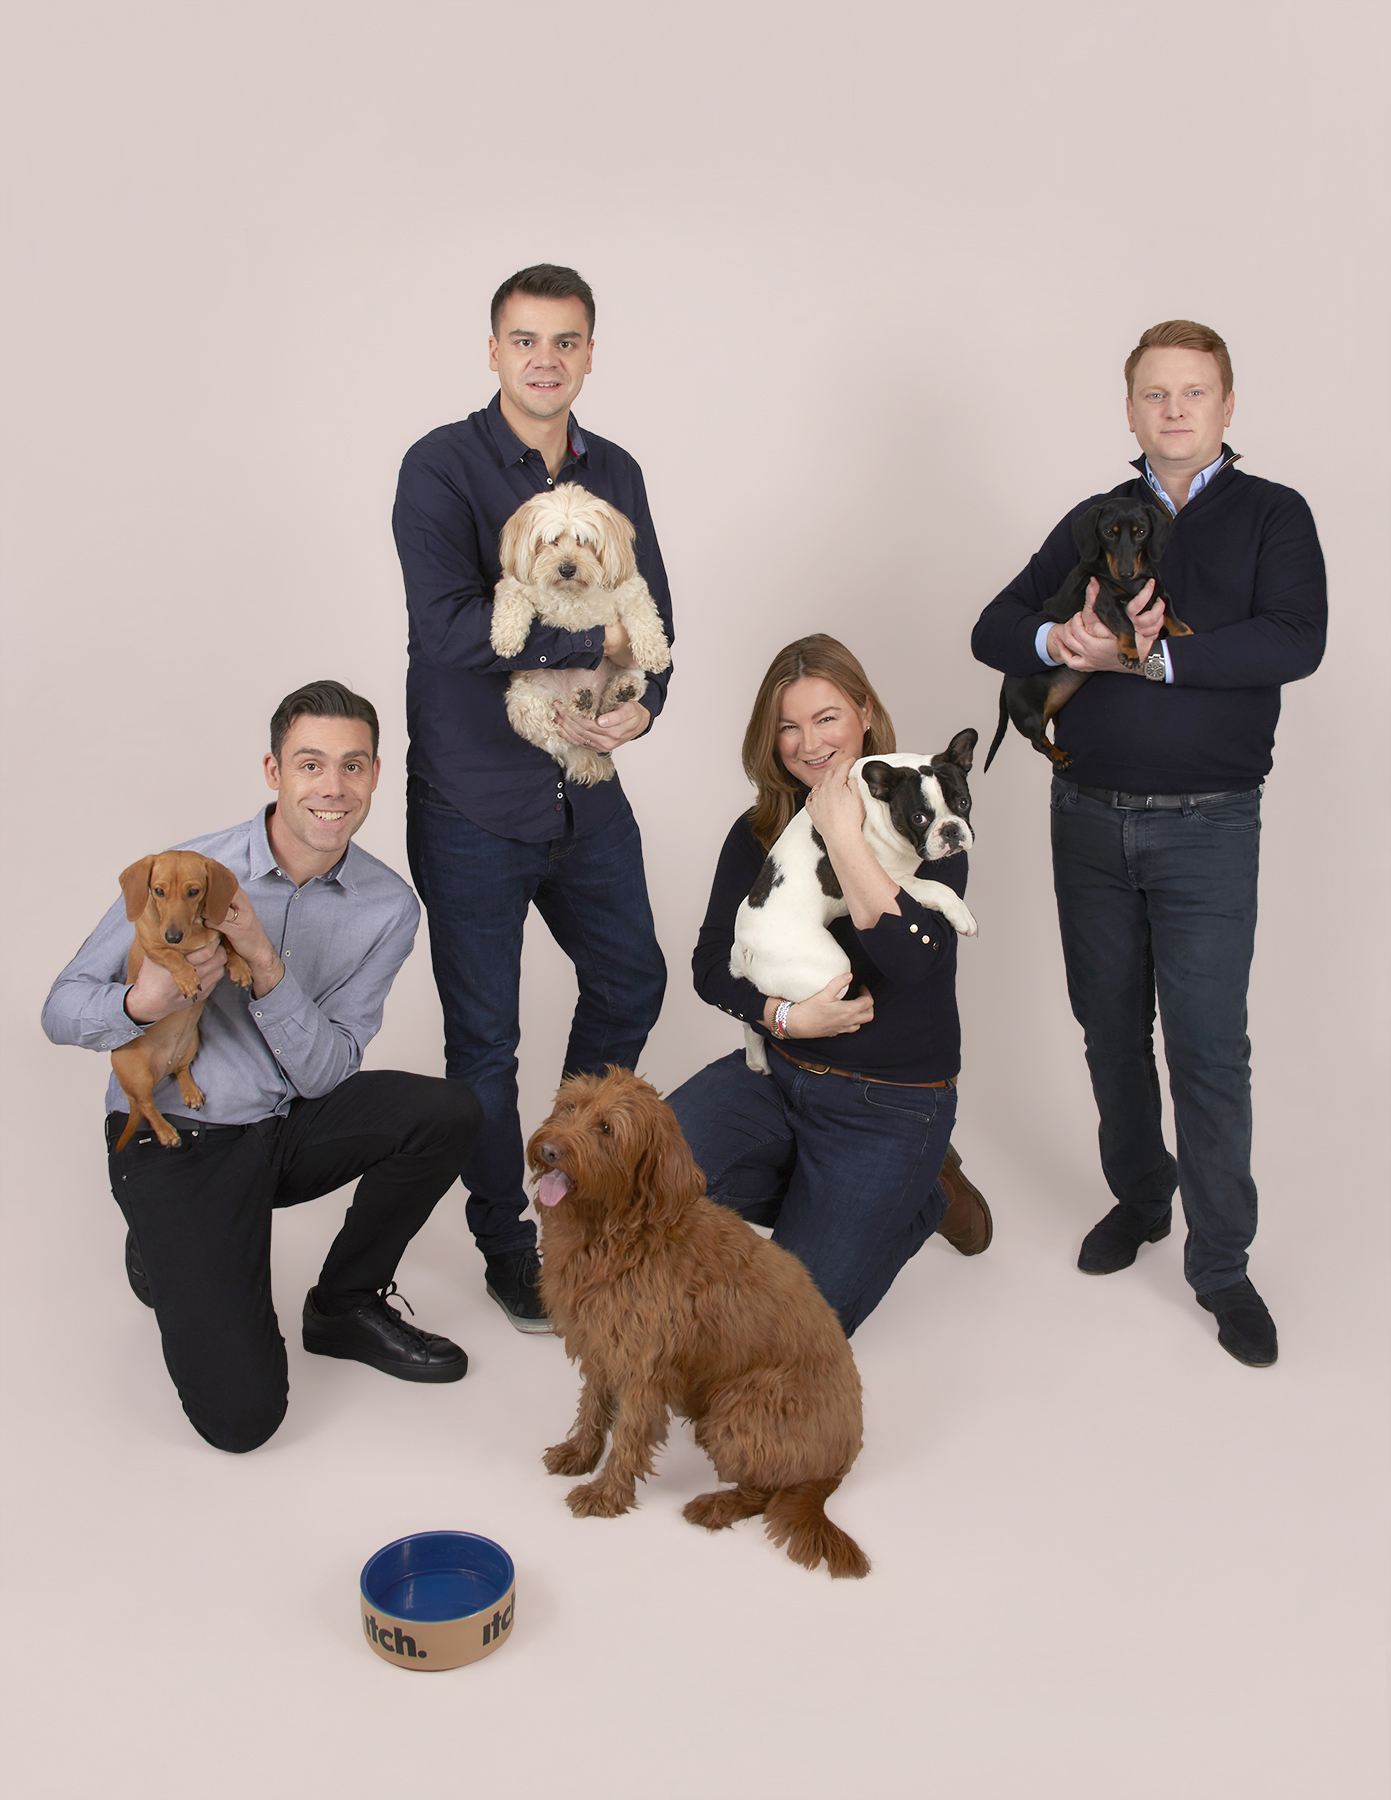 ITCH launches with £5M to disrupt pet wellbeing market